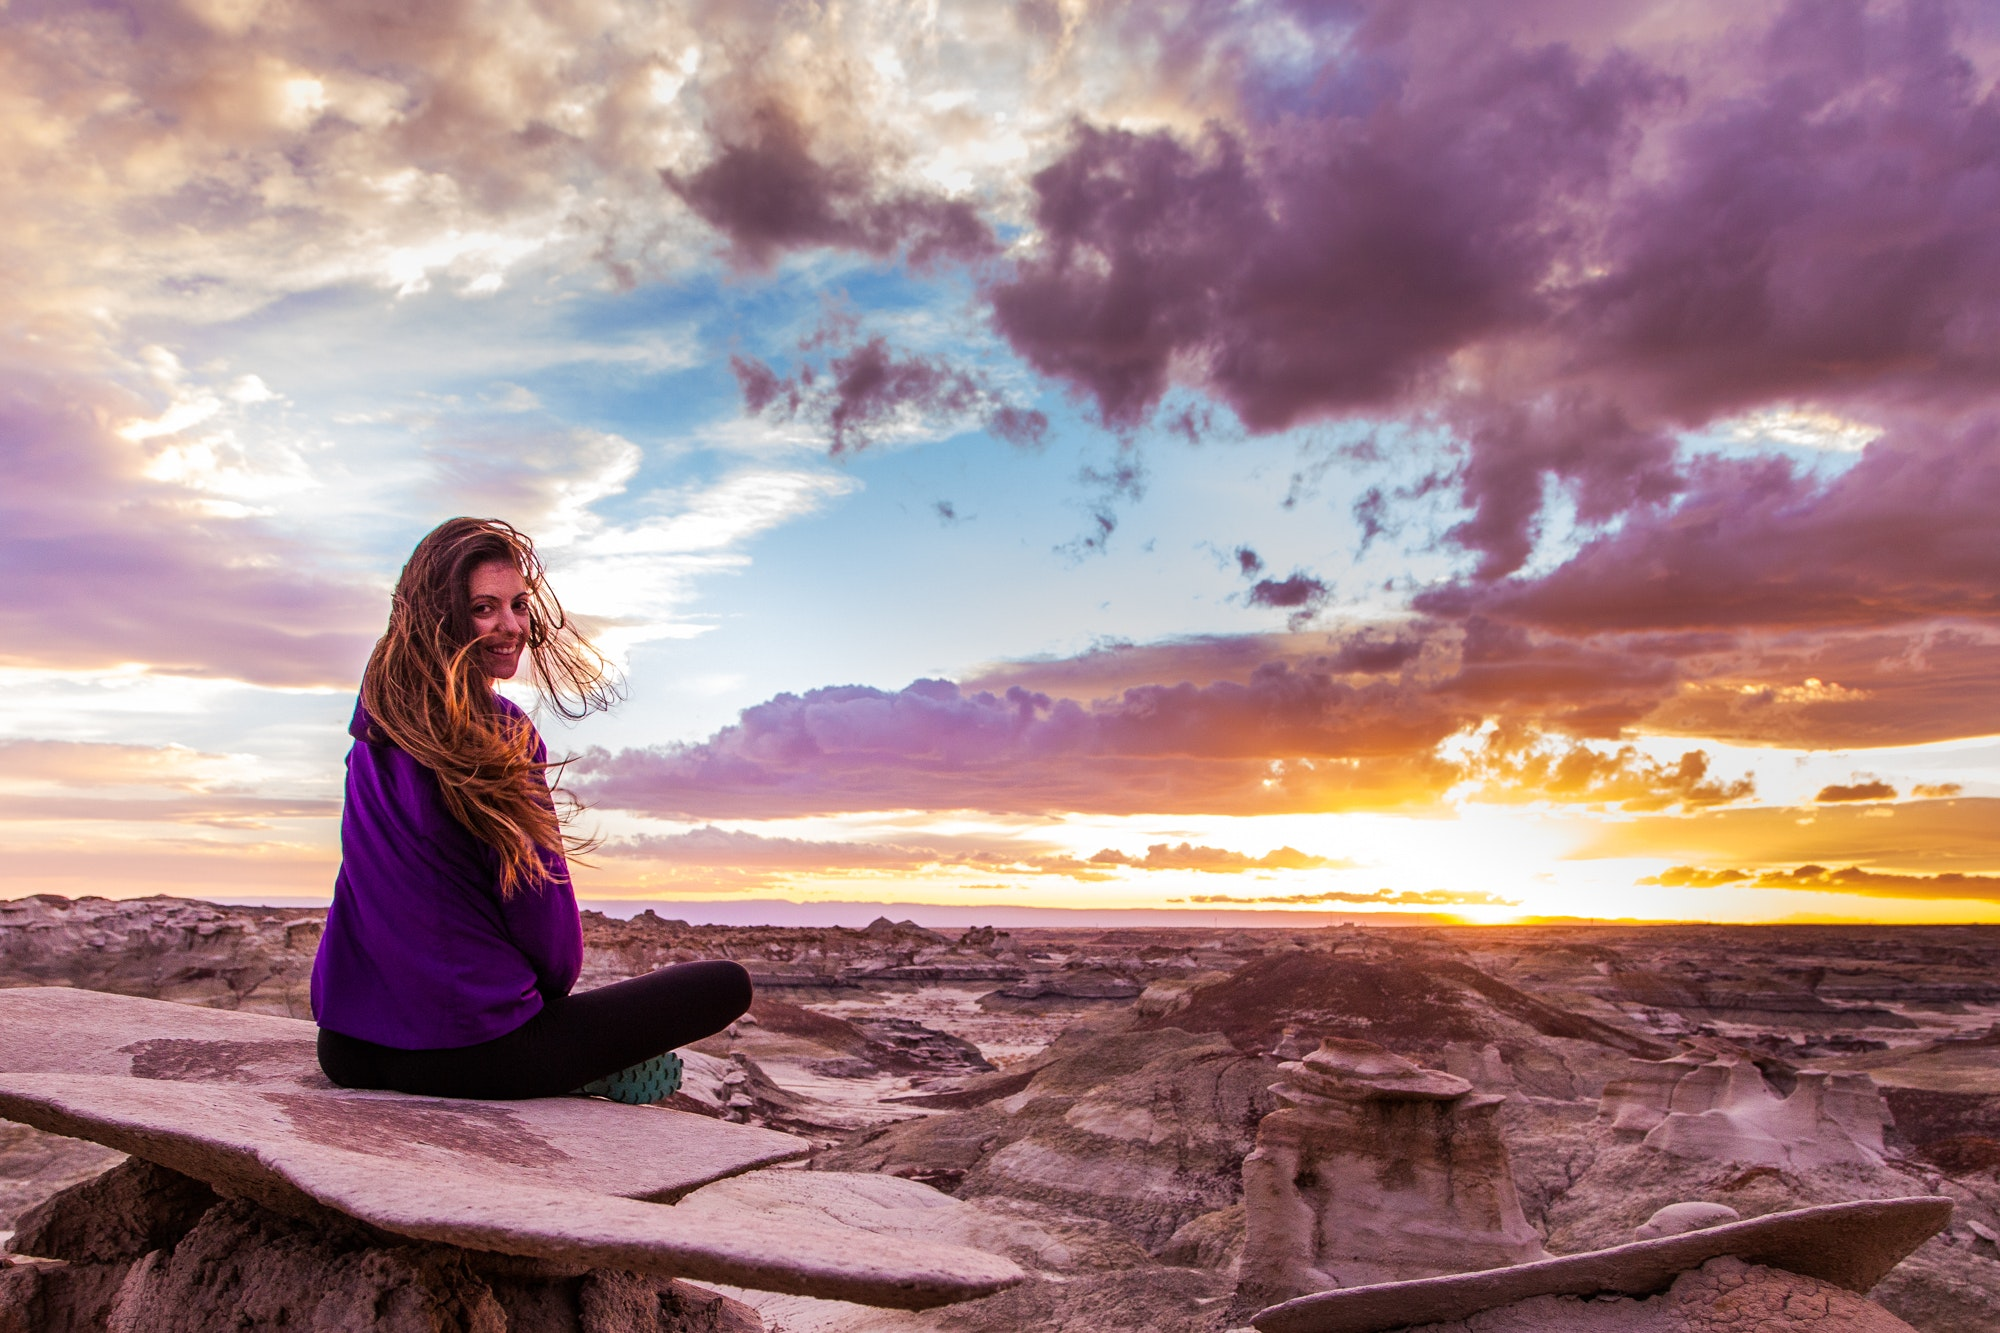 Woman sits on mountain under cloudy sky at sunset photo